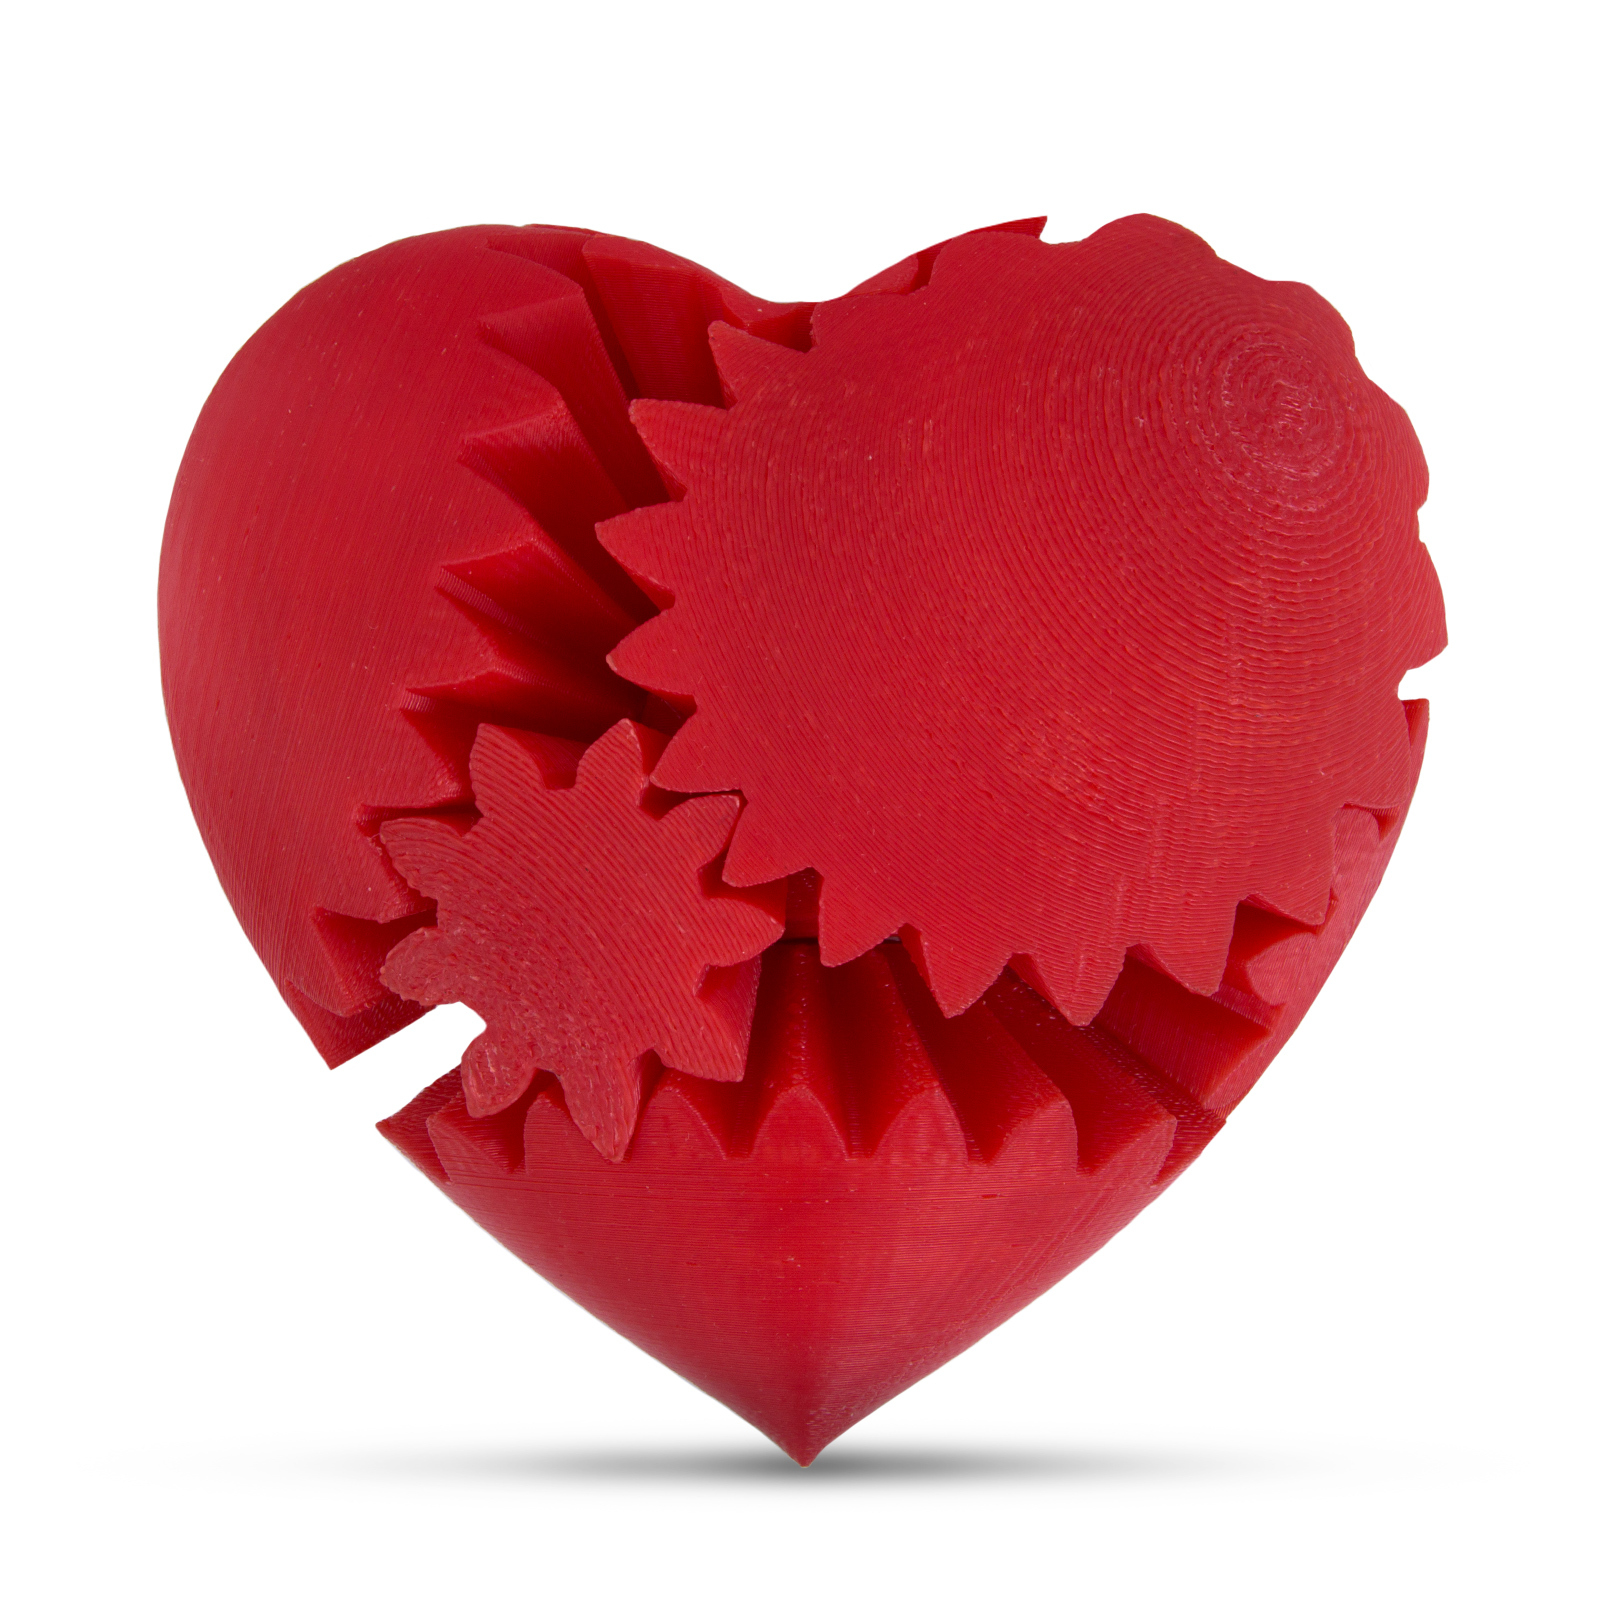 Leluv Large 3d Printed Heart Gear Twister Brain Teaser Toy